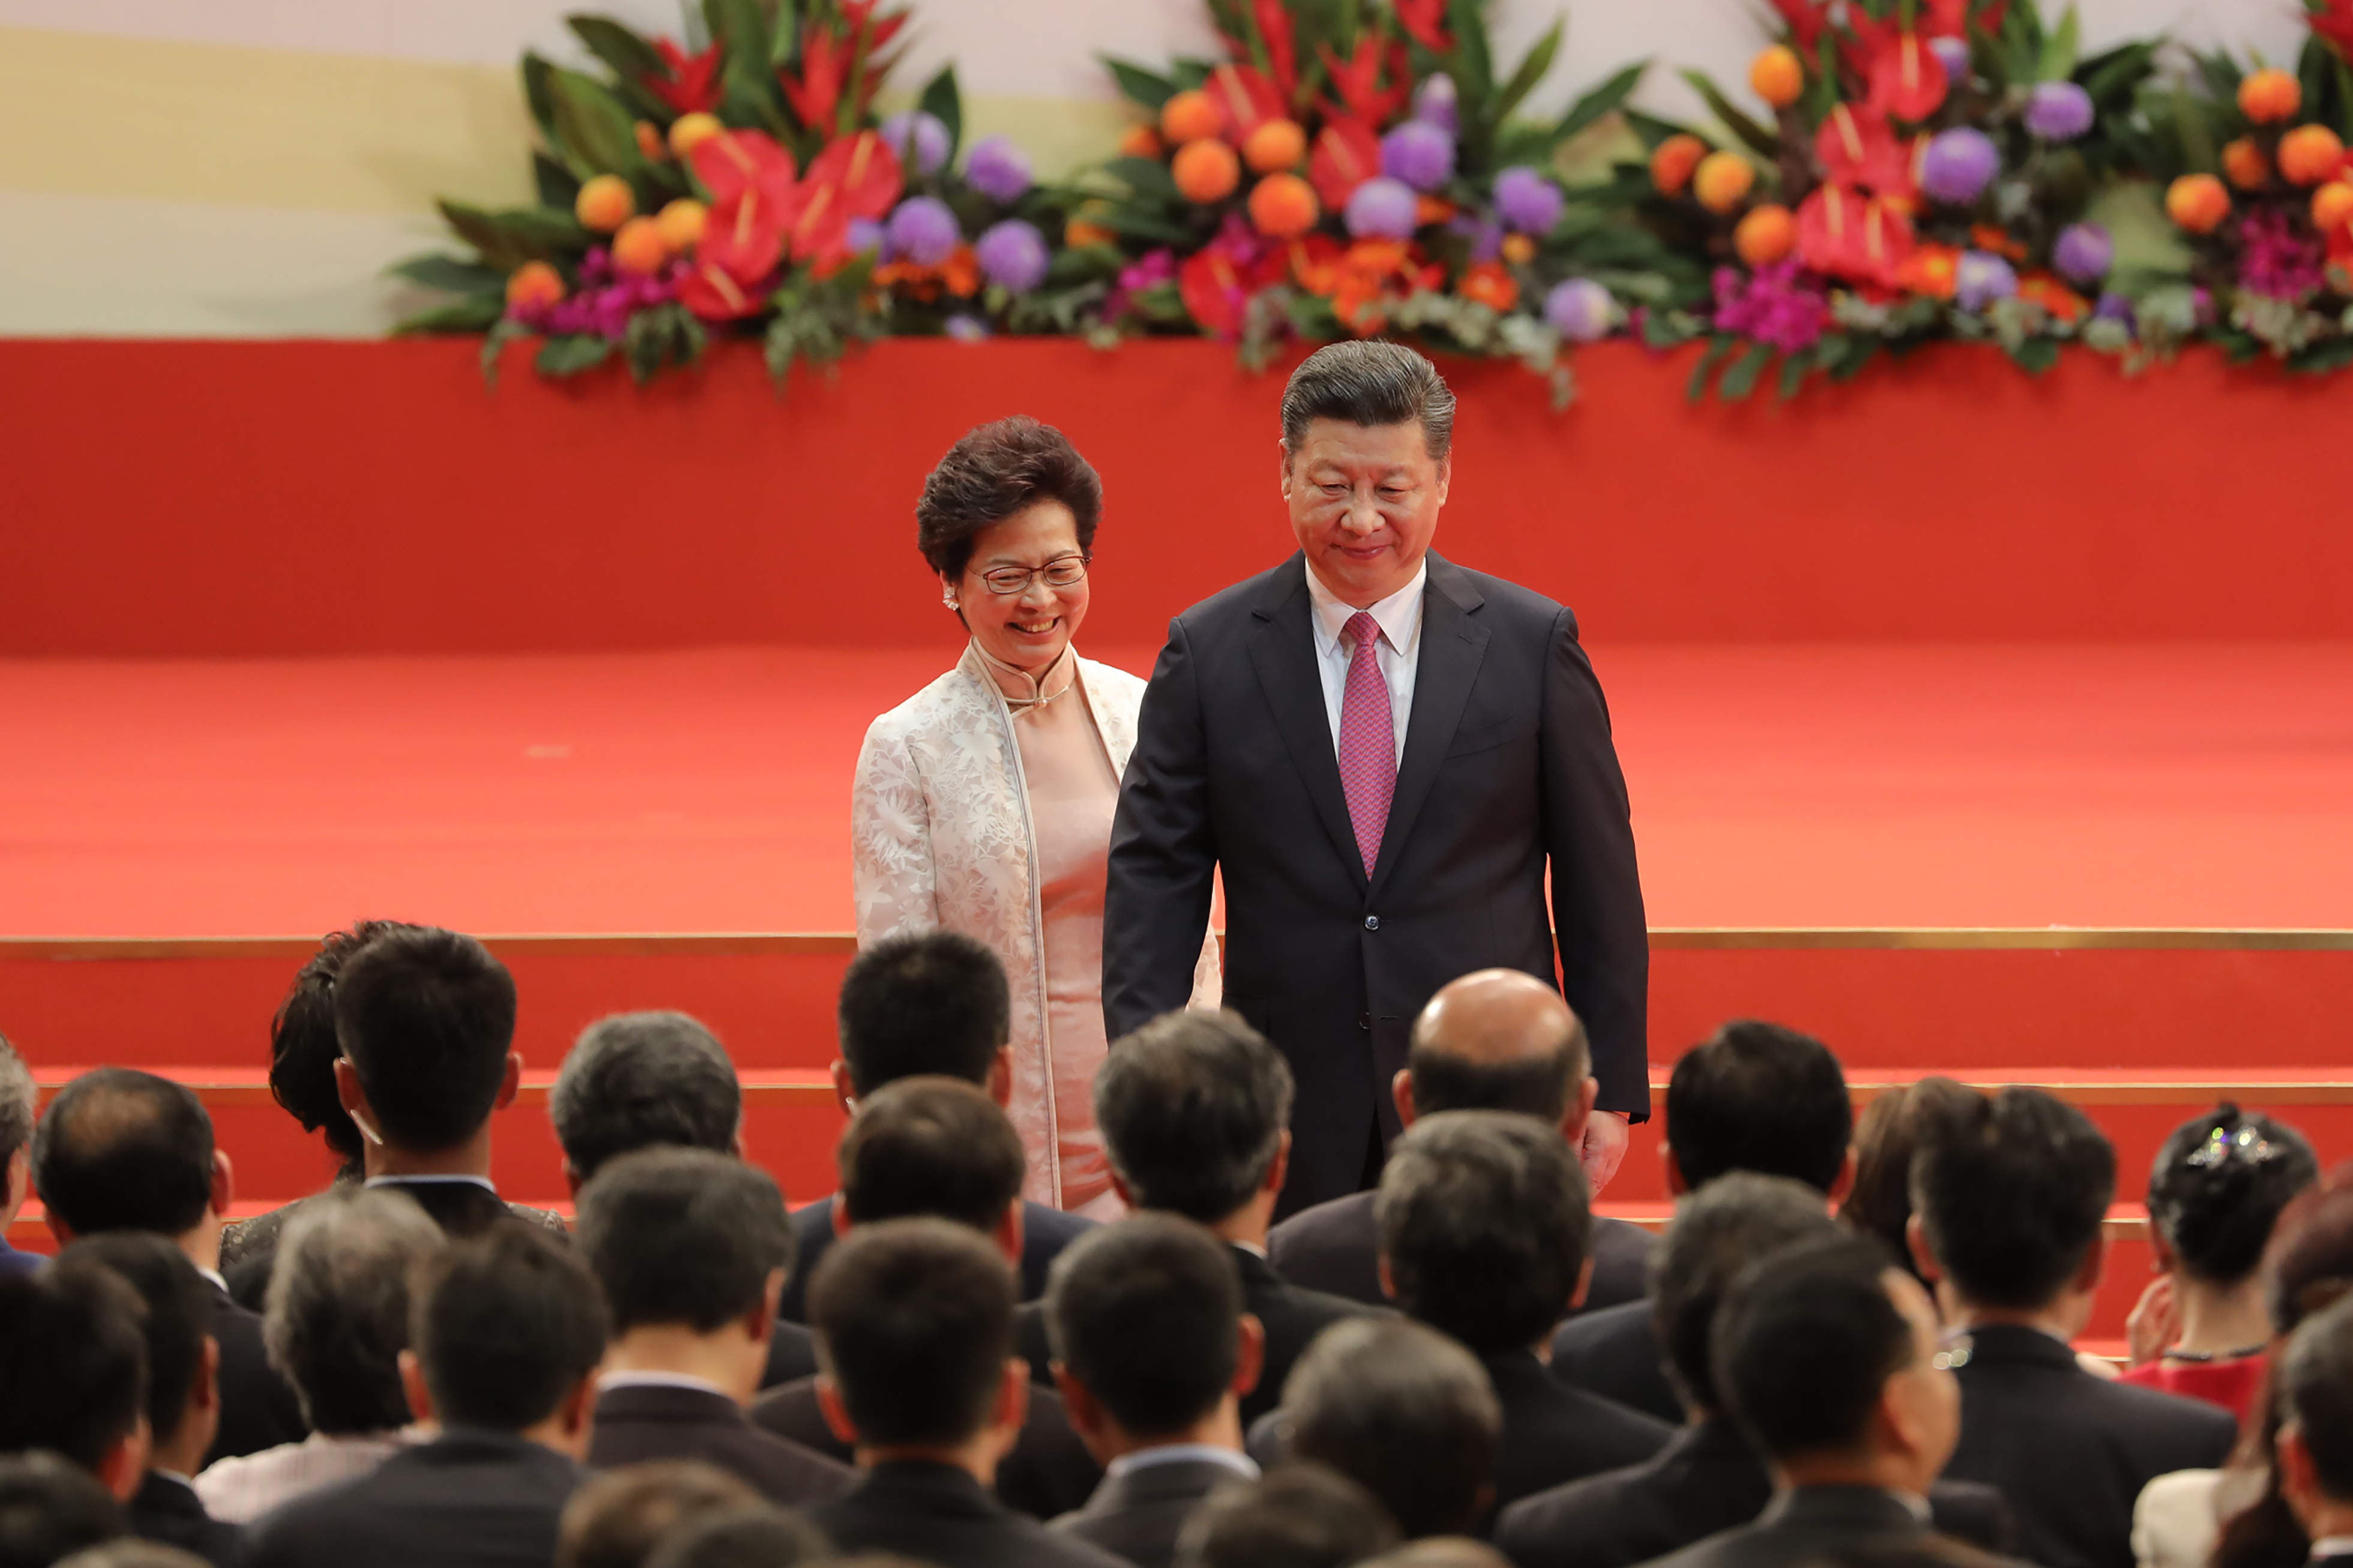 Xi Jinping, China's president, right, and Carrie Lam, Hong Kong's incoming chief executive, leave the stage during a swearing-in ceremony in Hong Kong, China, on Saturday, July 1, 2017.